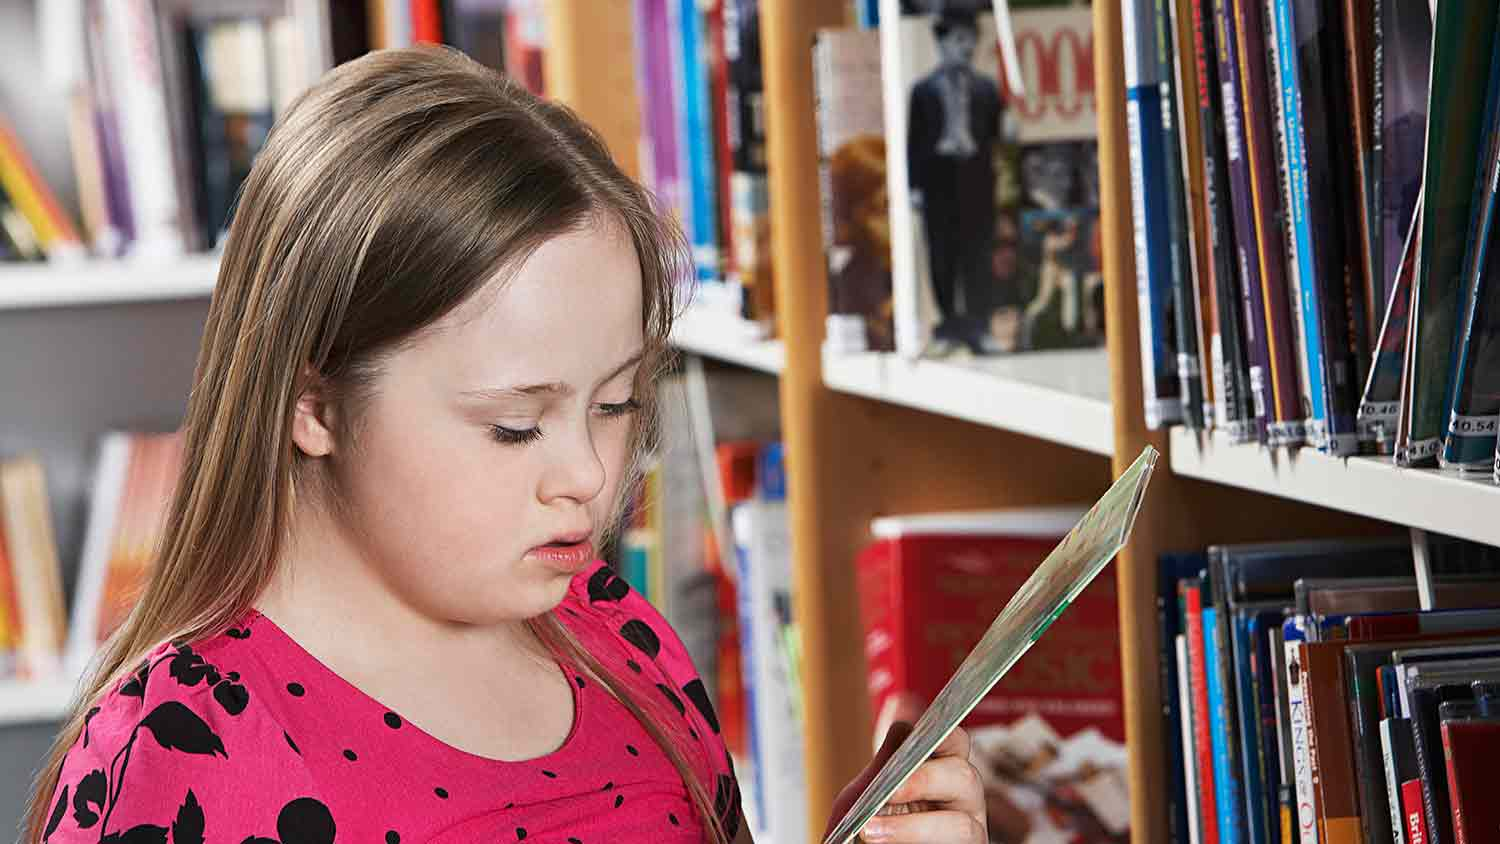 Junior school aged girl reading the back of a small thin book in a library